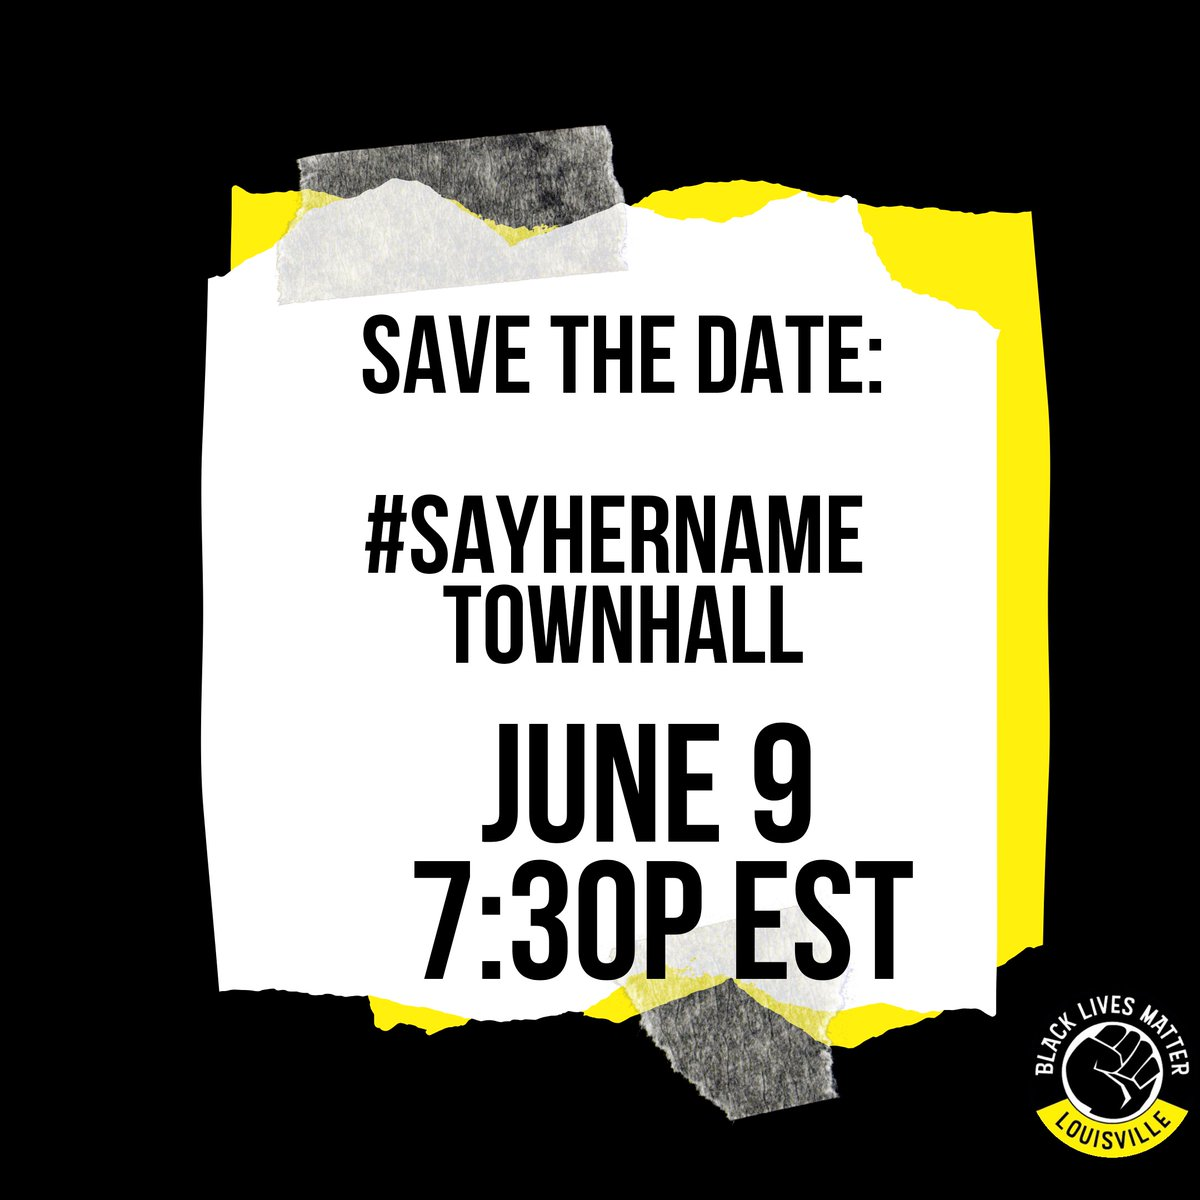 More details coming soon. Save the date, spread the word. #Sayhername #justiceforBreonnaTaylor #JusticeforBre https://t.co/sOKzbeslEZ